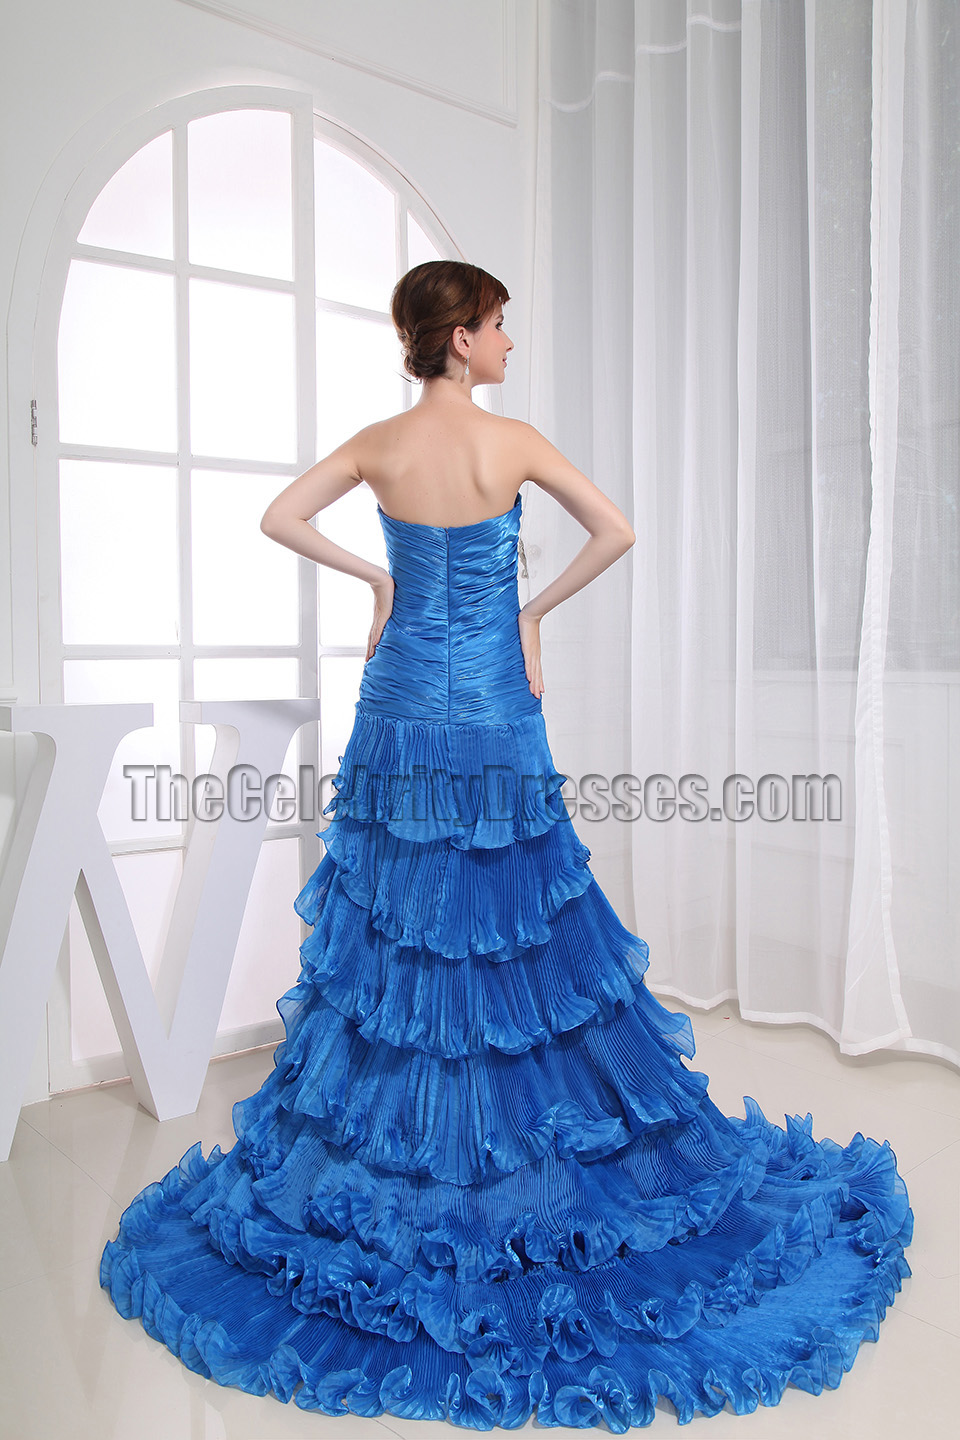 Glamorous Blue Strapless High Low Prom Dress Formal ... - photo#12